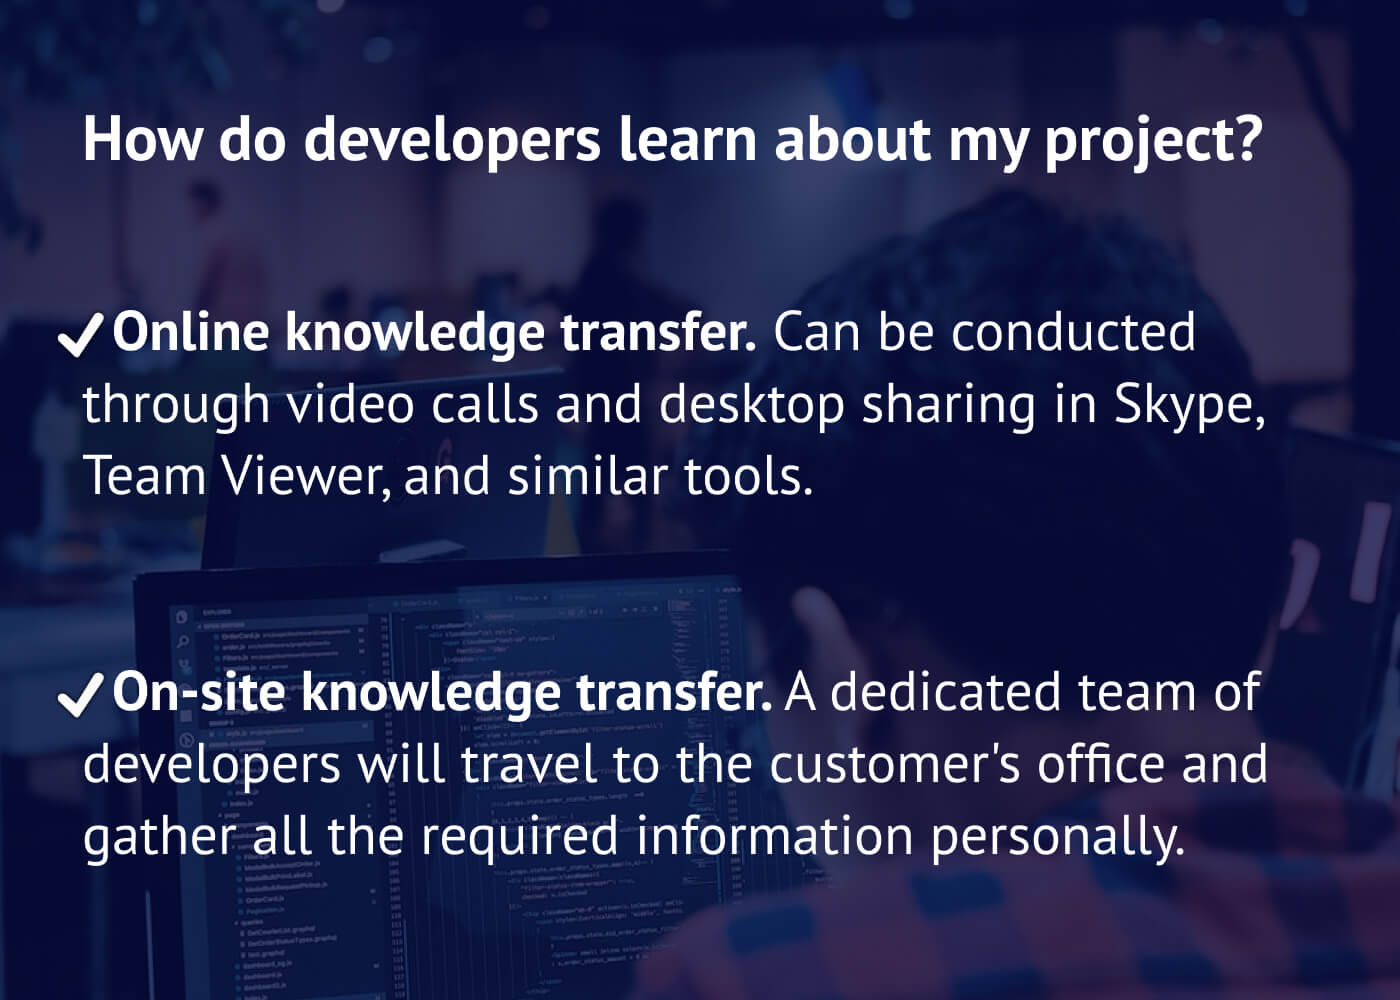 How do developers learn about my project